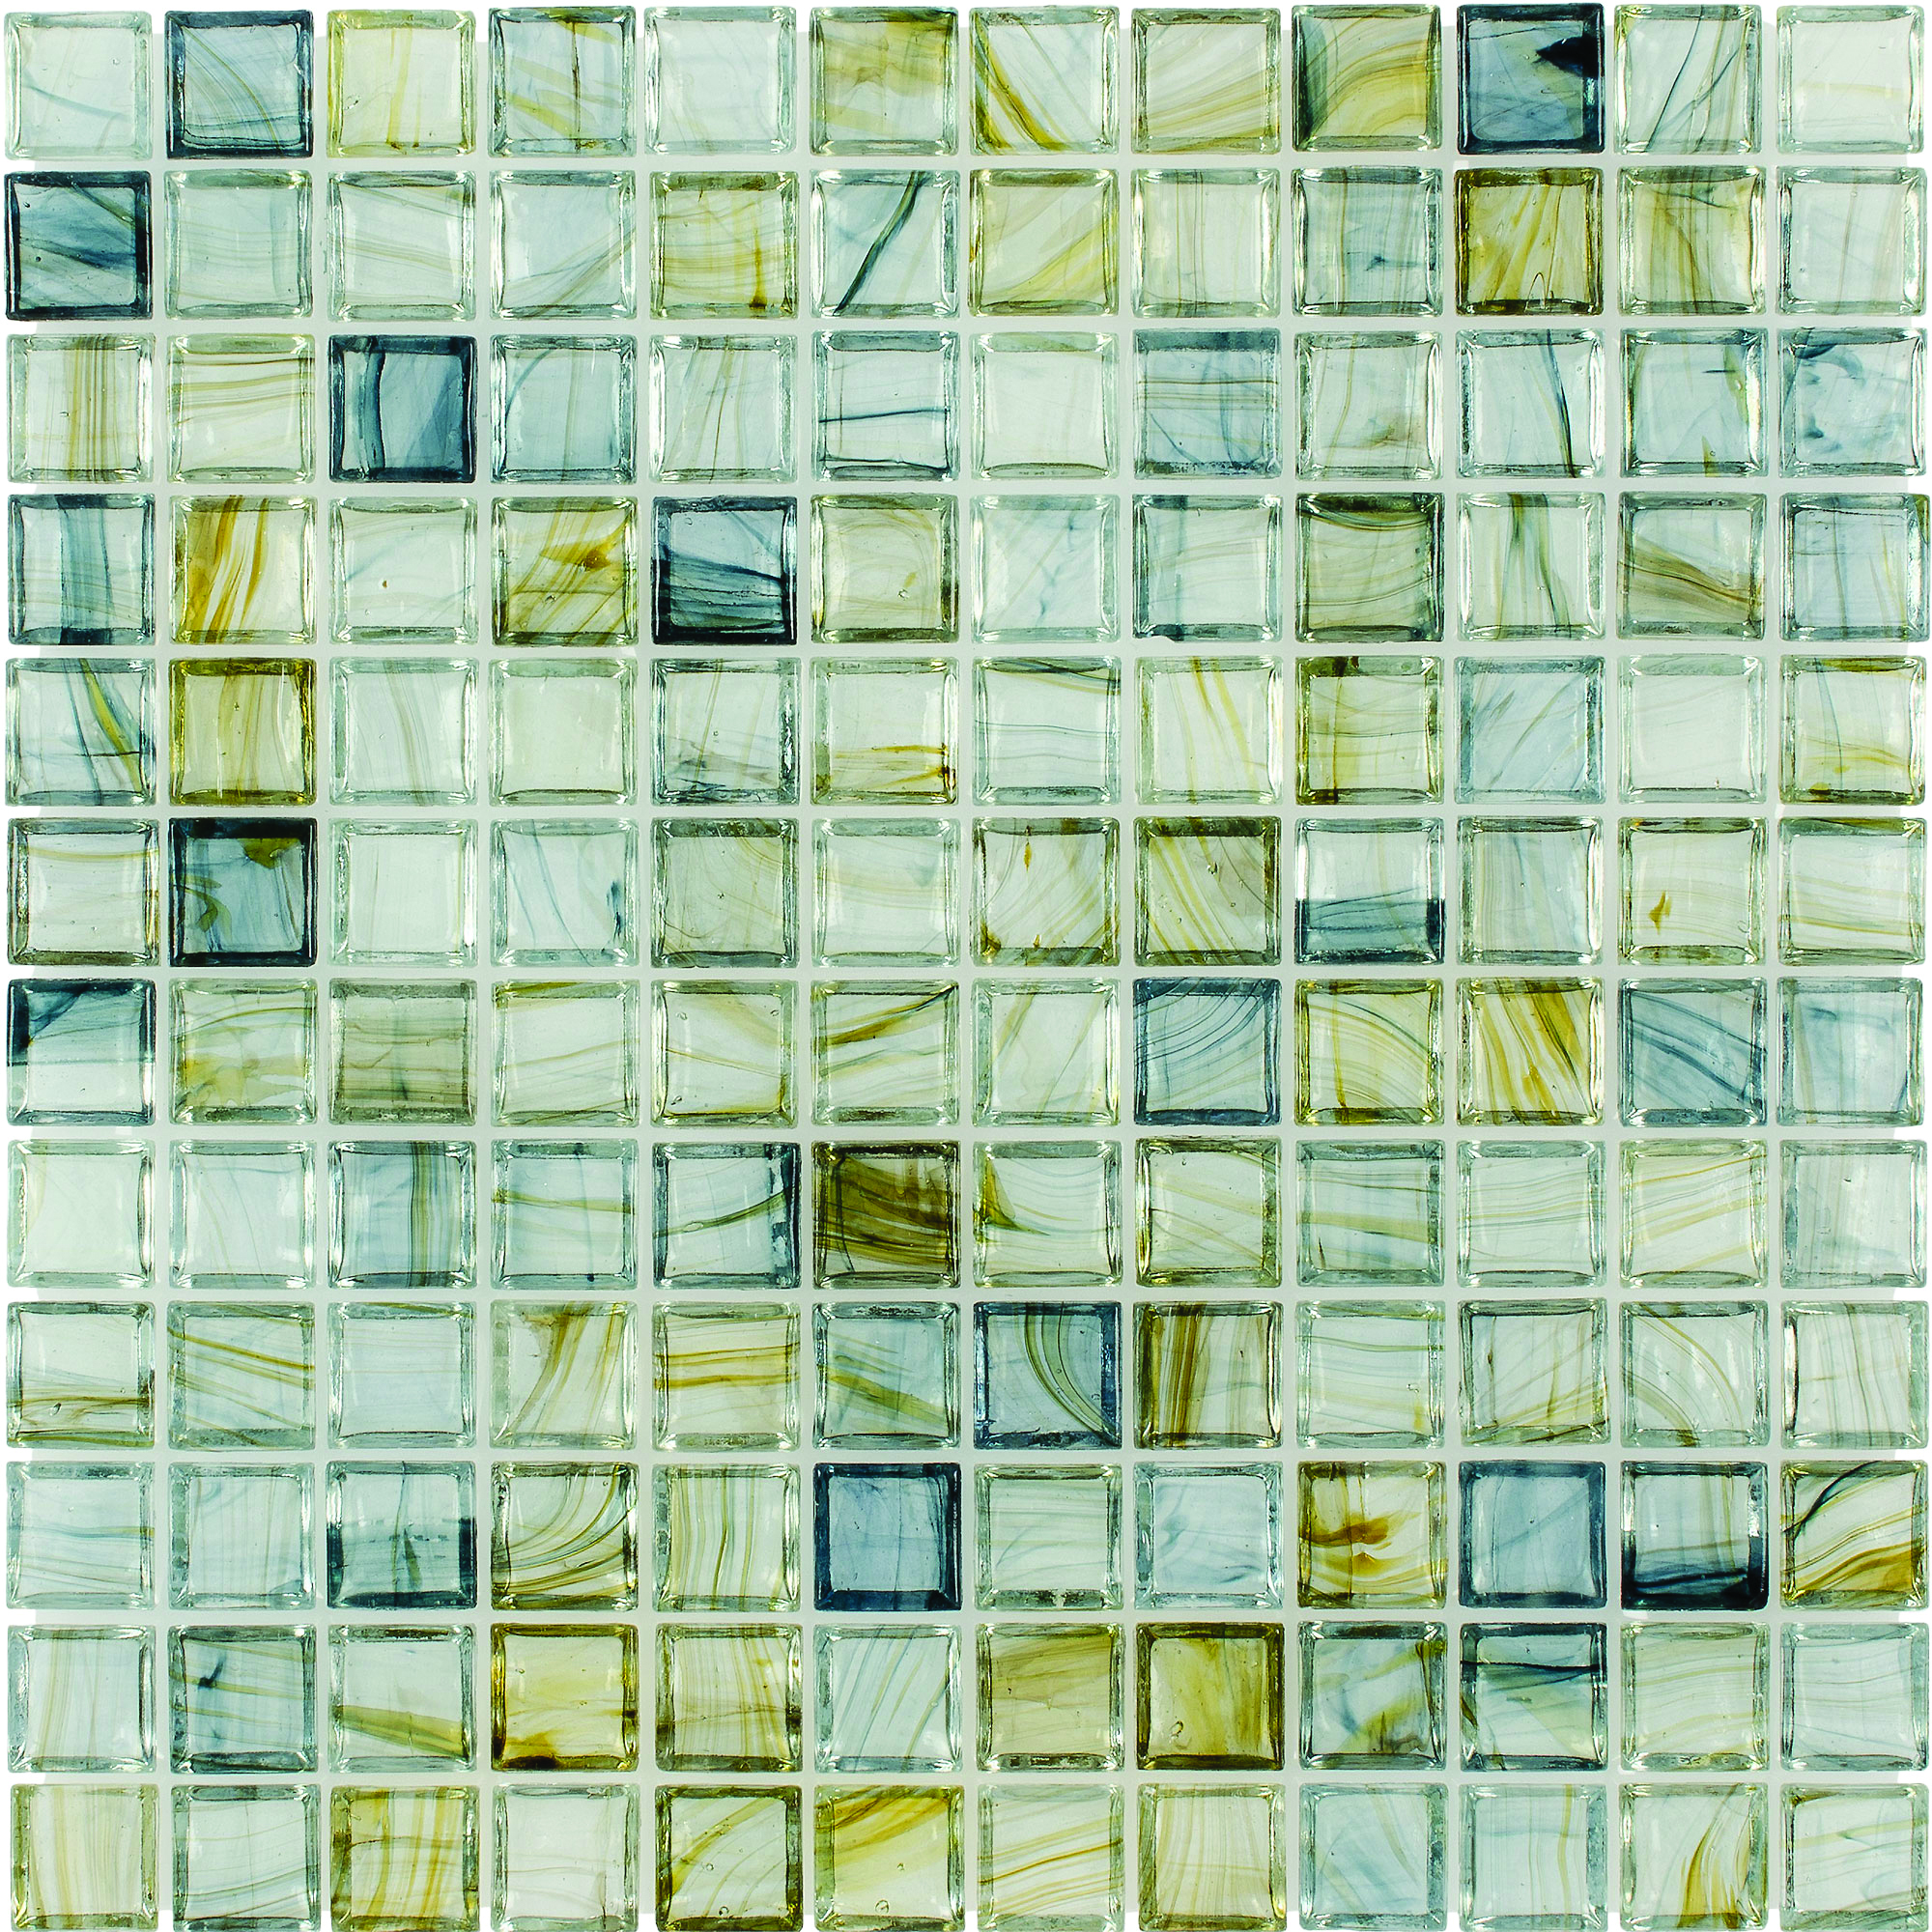 Glass Mosaic Tile aries canal blue